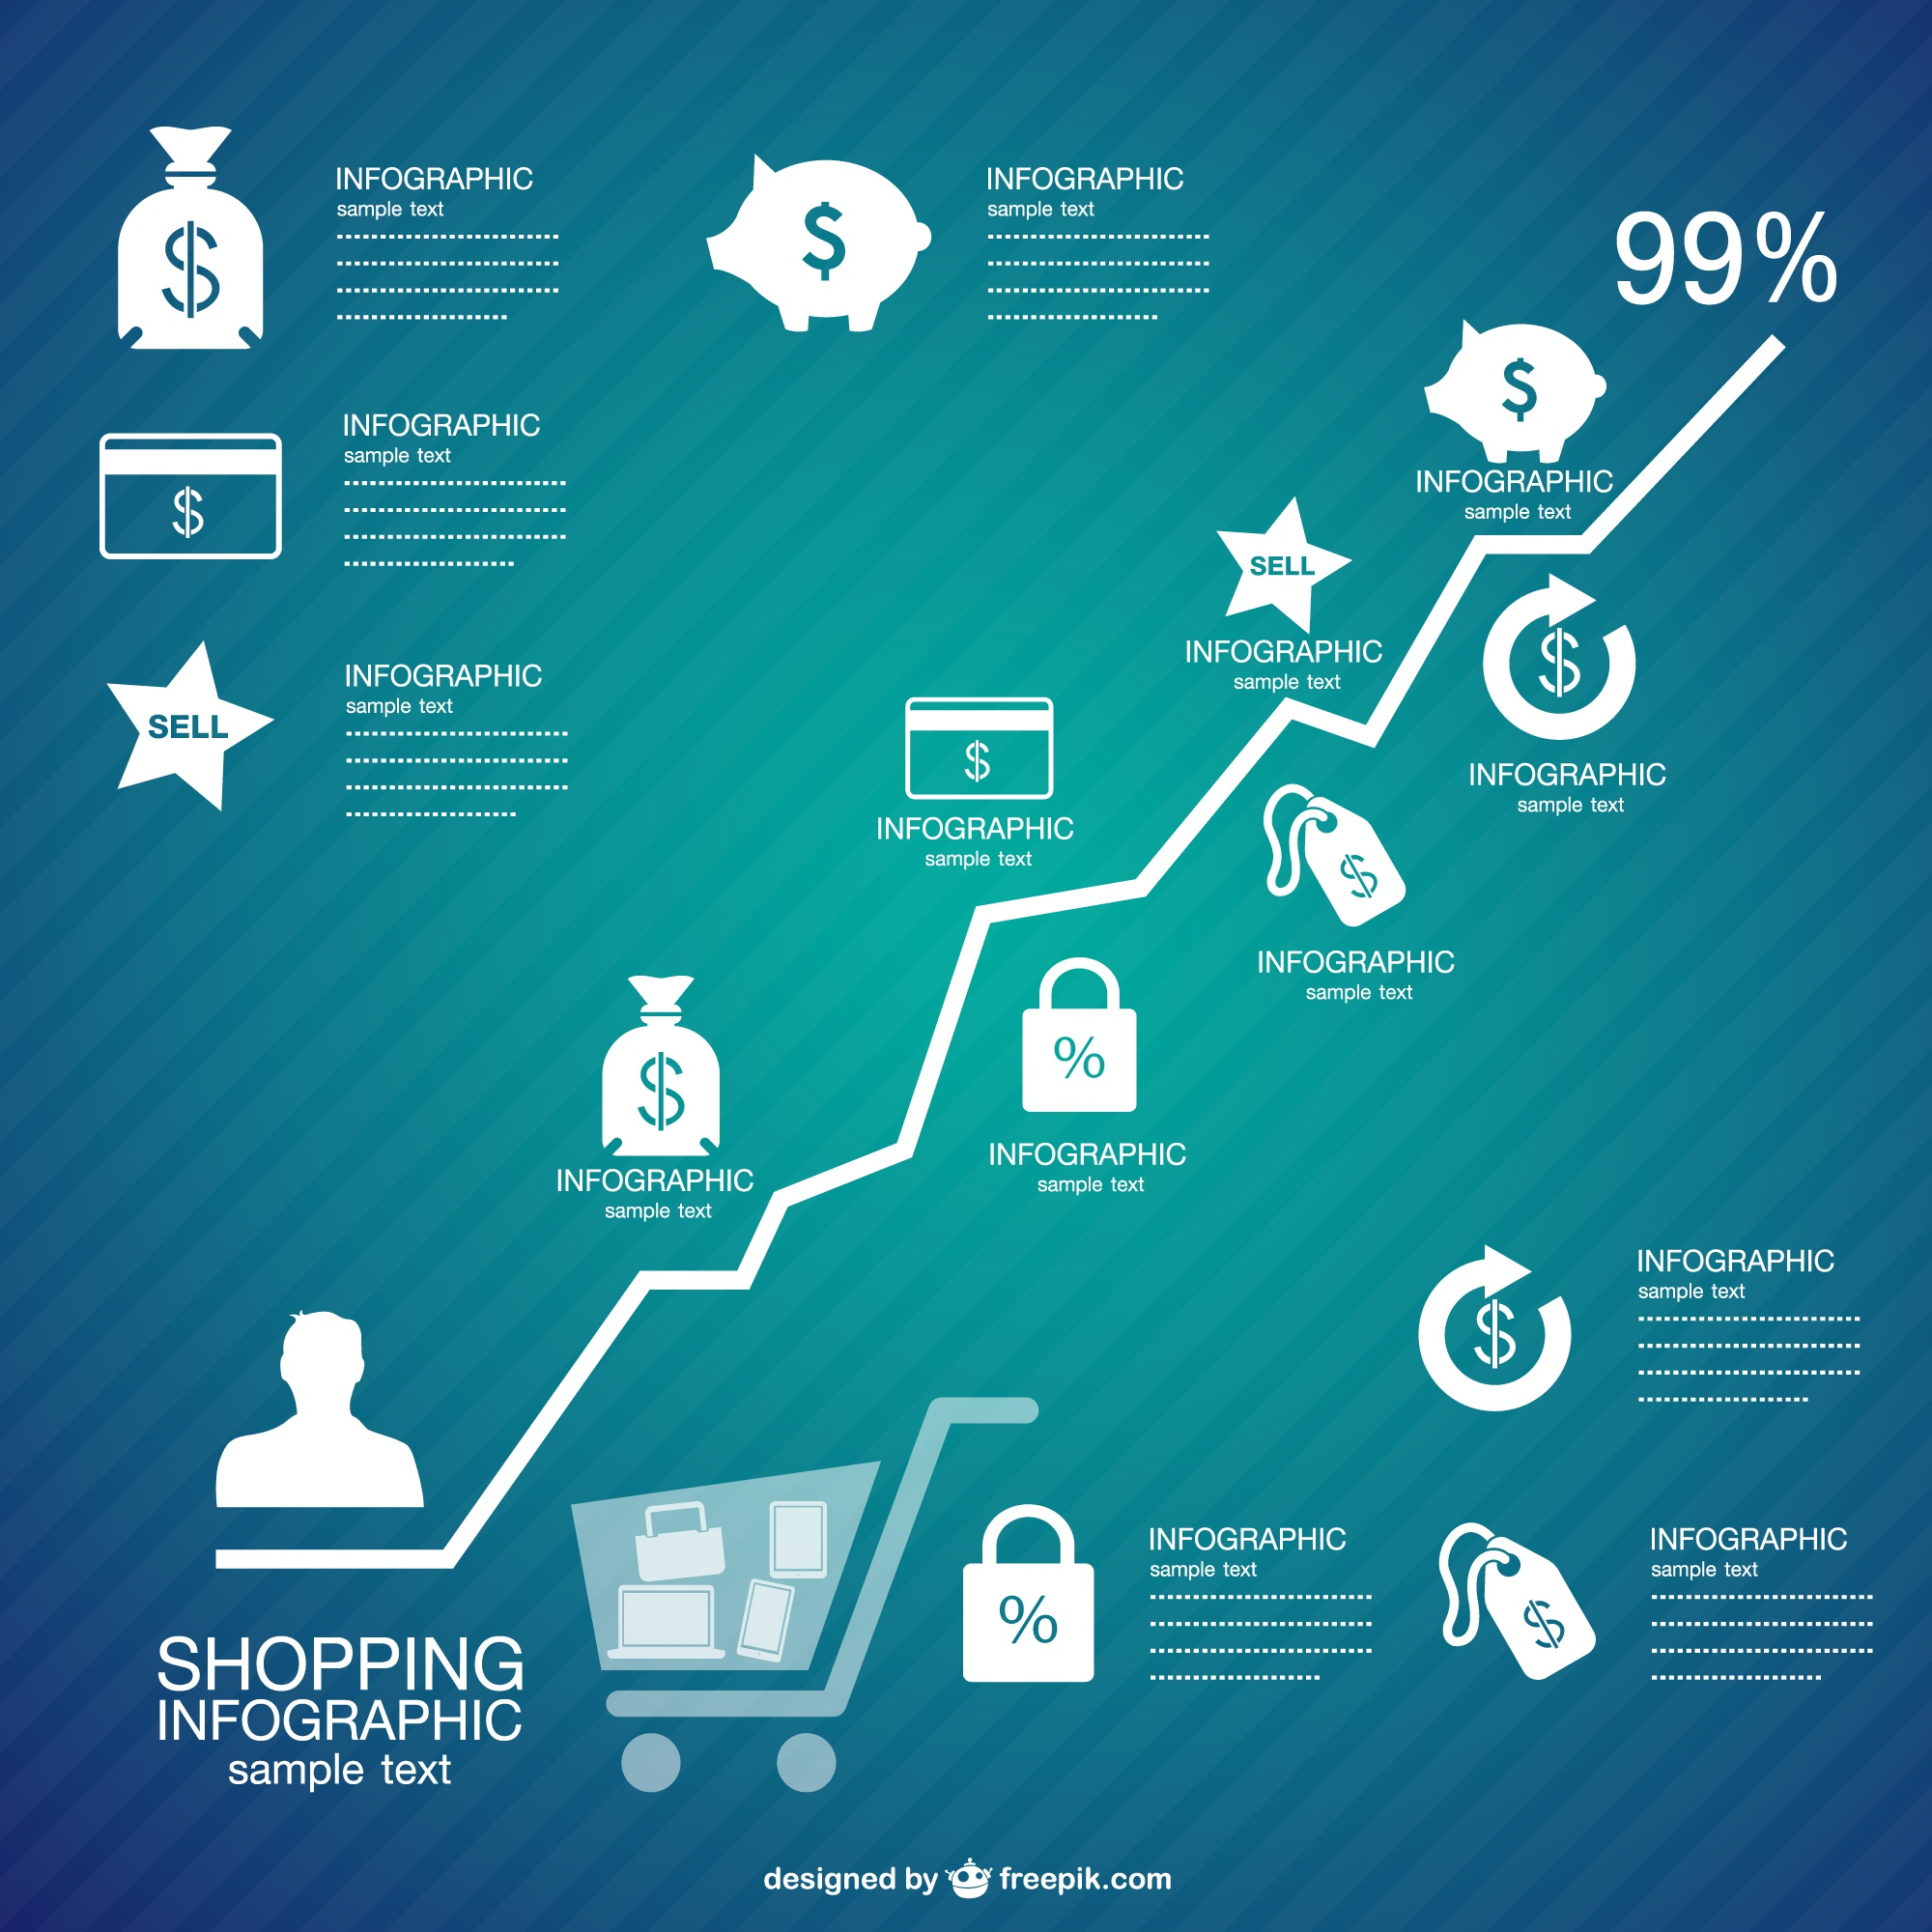 Shopping infographic free graphic